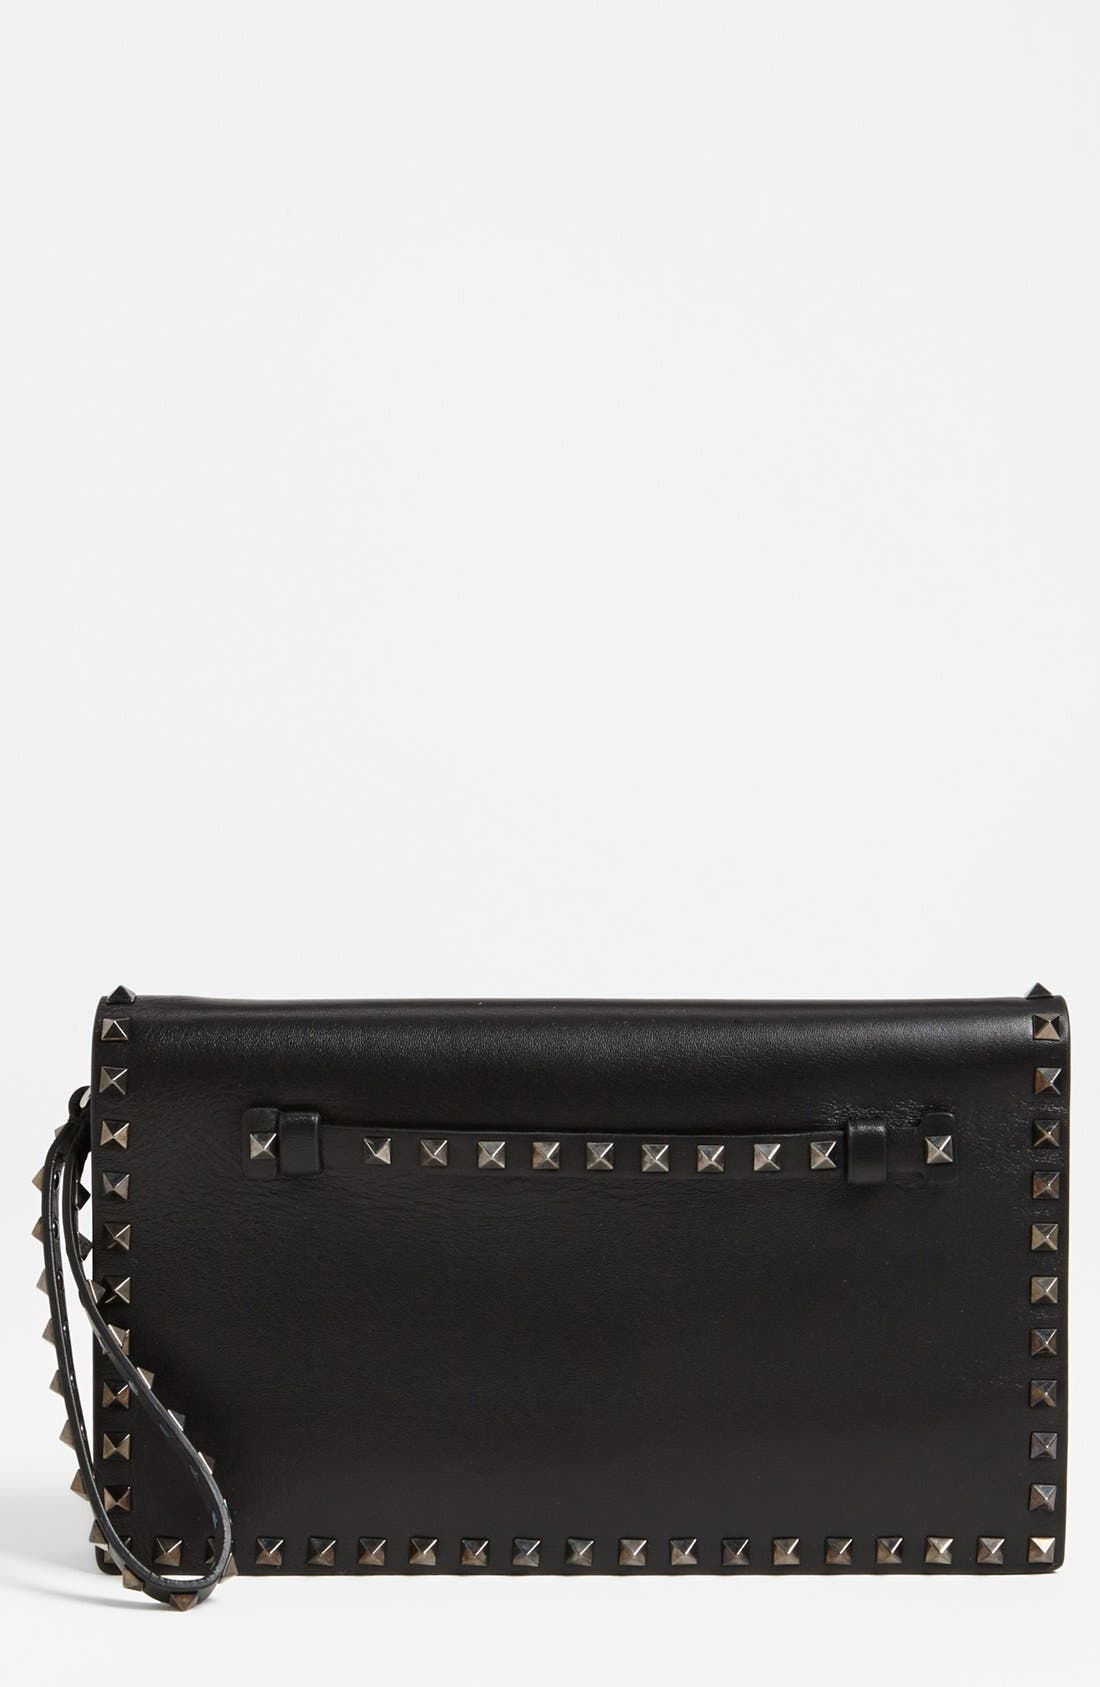 Main Image - Valentino 'Rockstud - Noir' Leather Flap Clutch